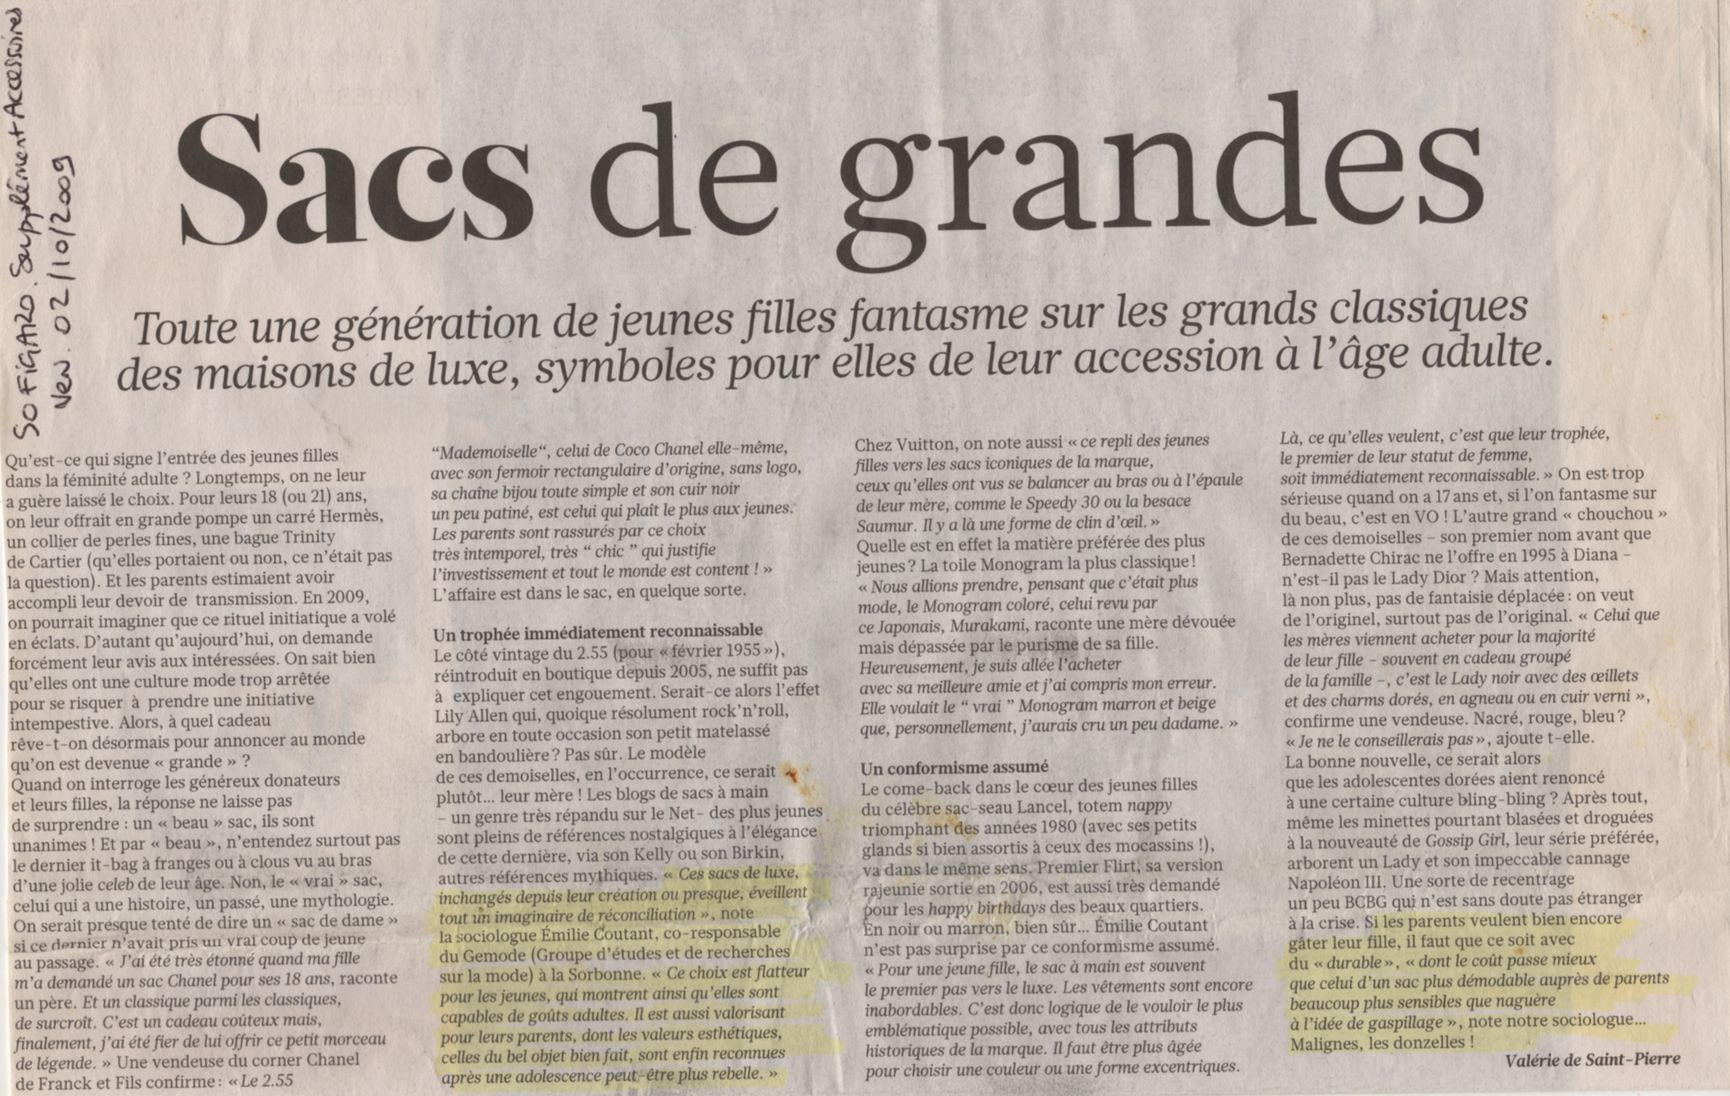 Interview Emilie Coutant Le Figaro 2 octobre 2009